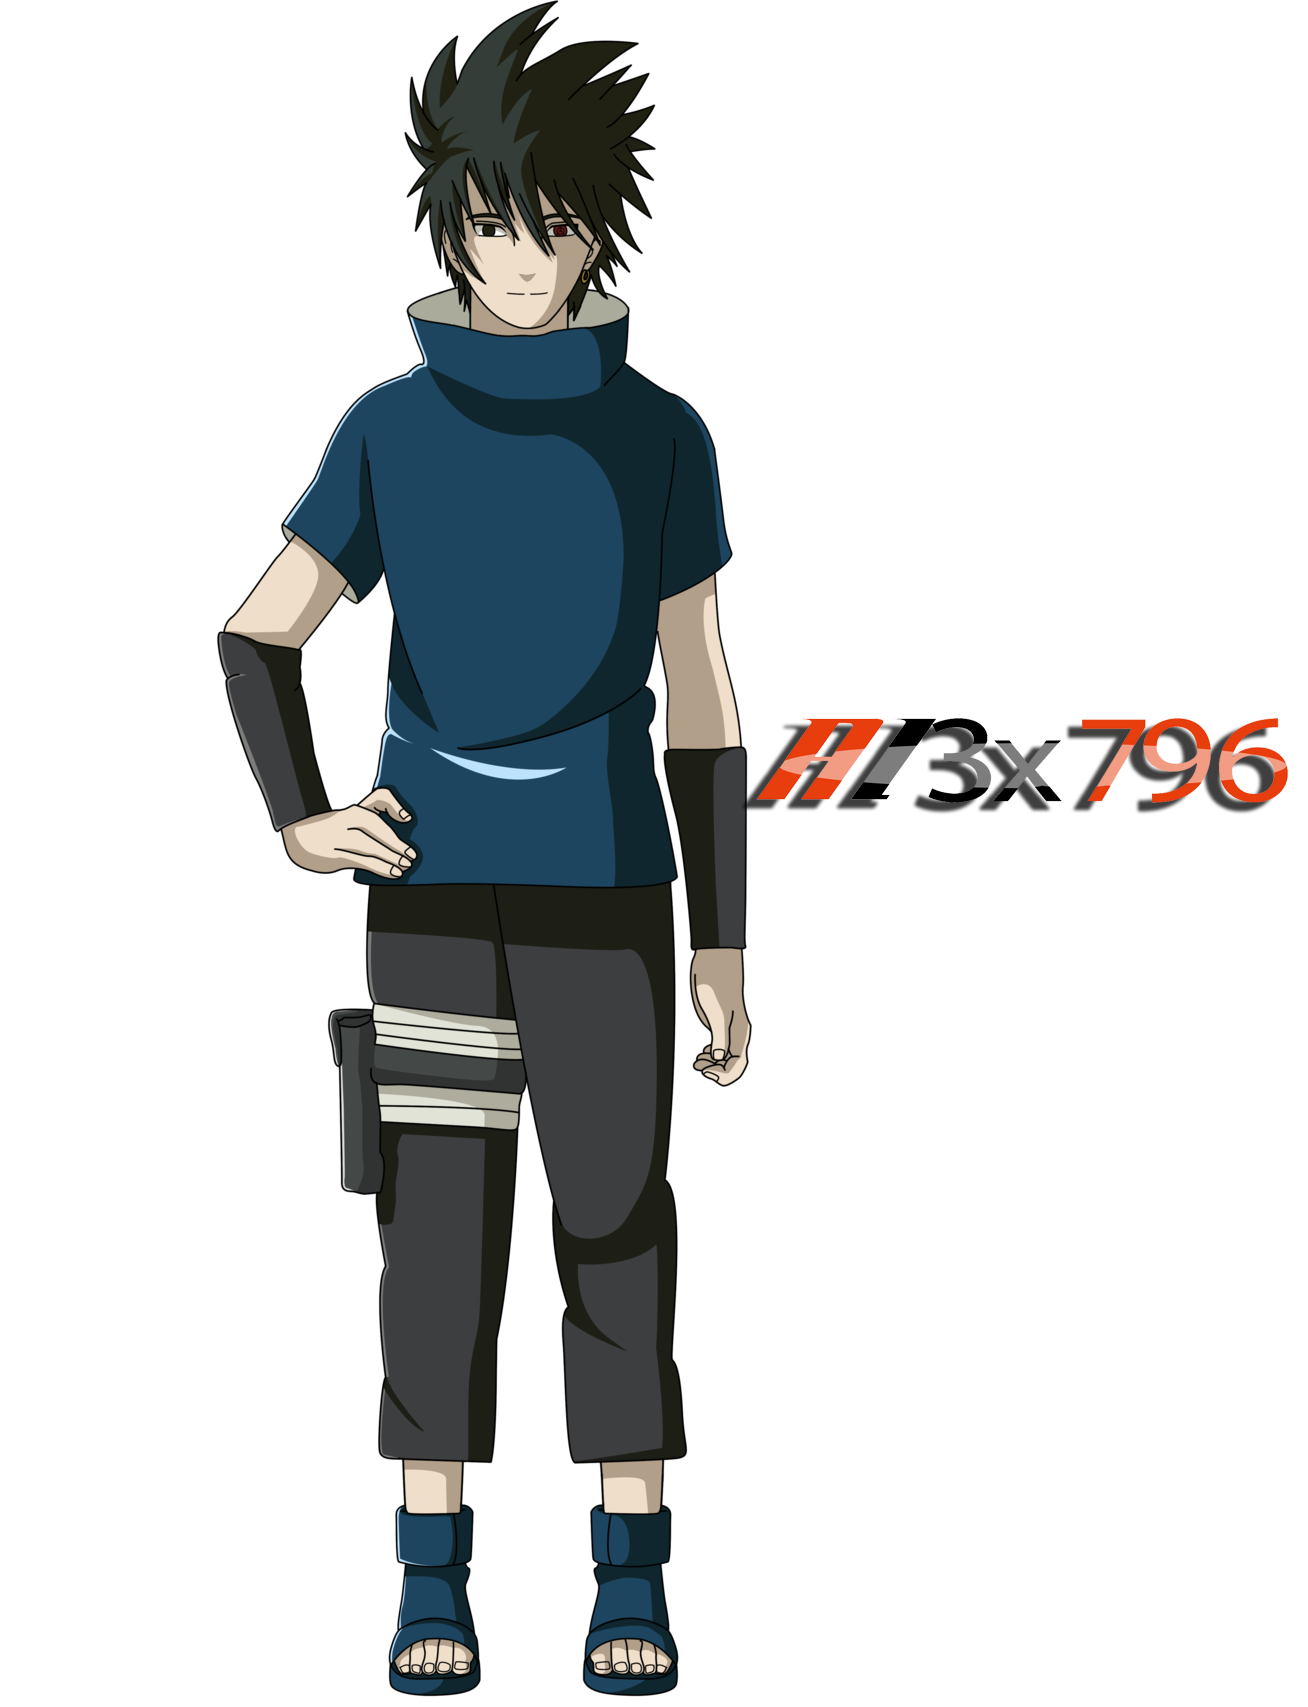 Sakebe Uchiha Full body render by AL3X796 on DeviantArt